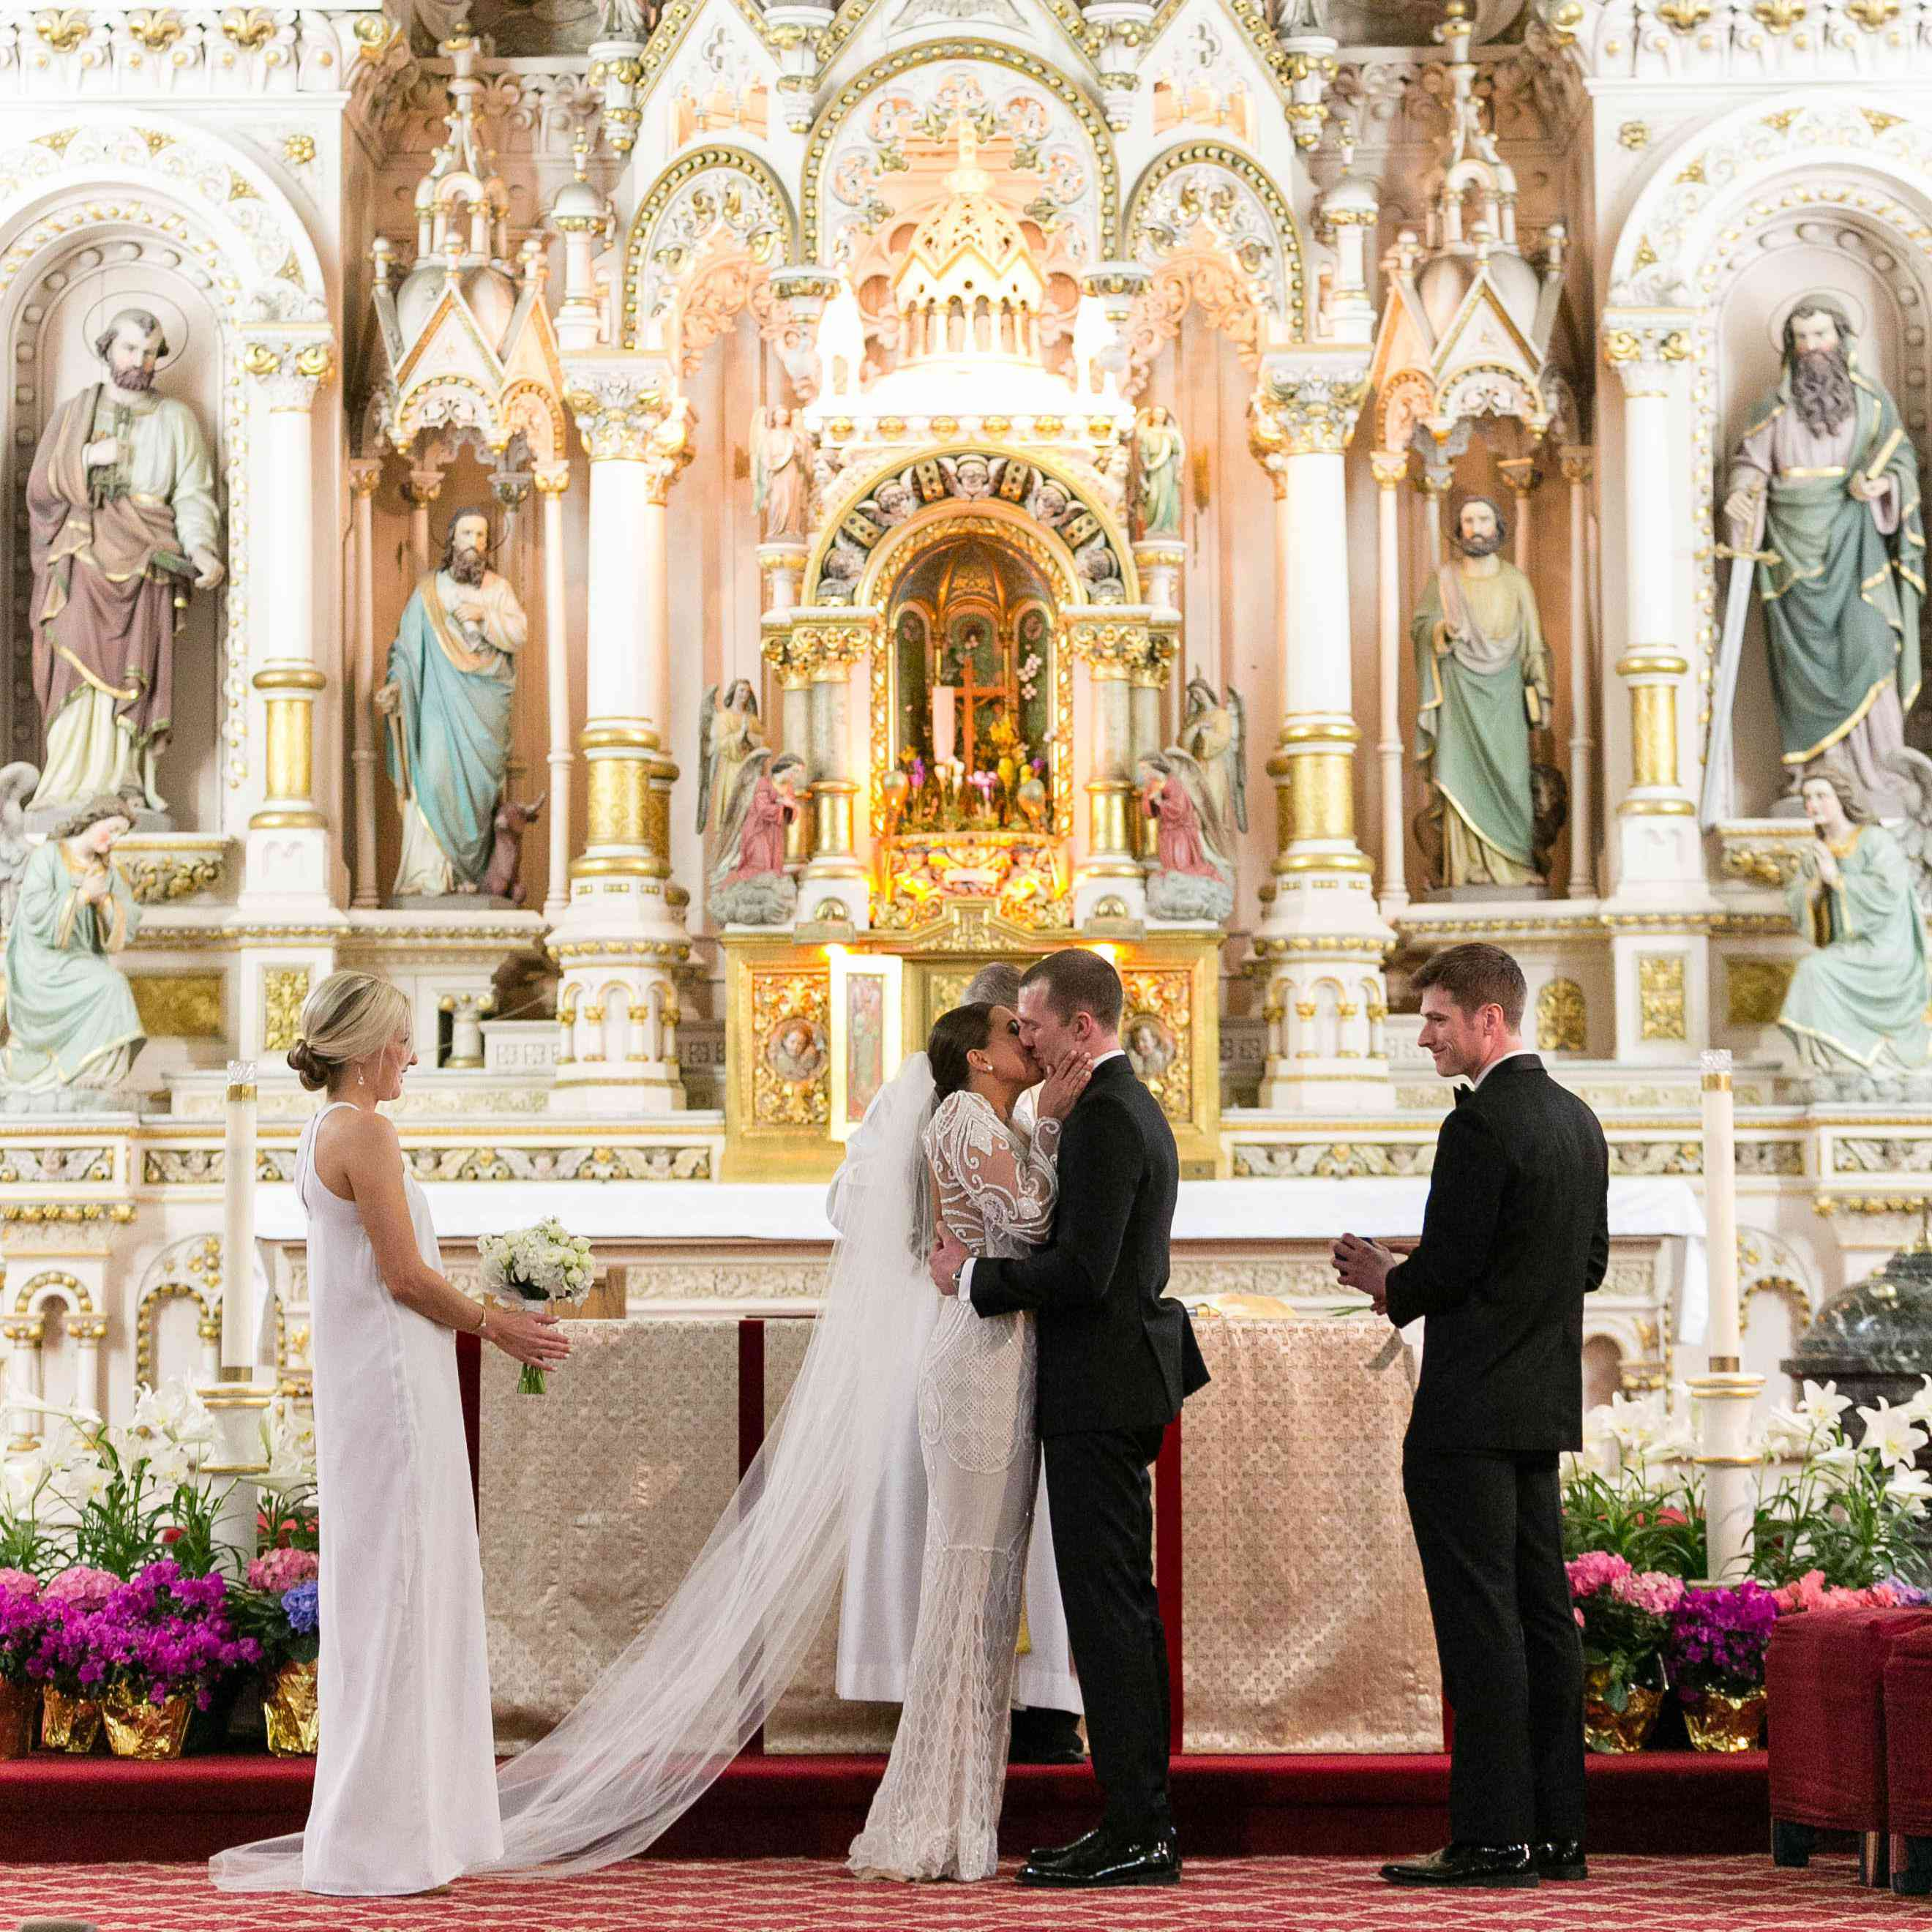 6 Essential Details About Getting Married in a Catholic Church